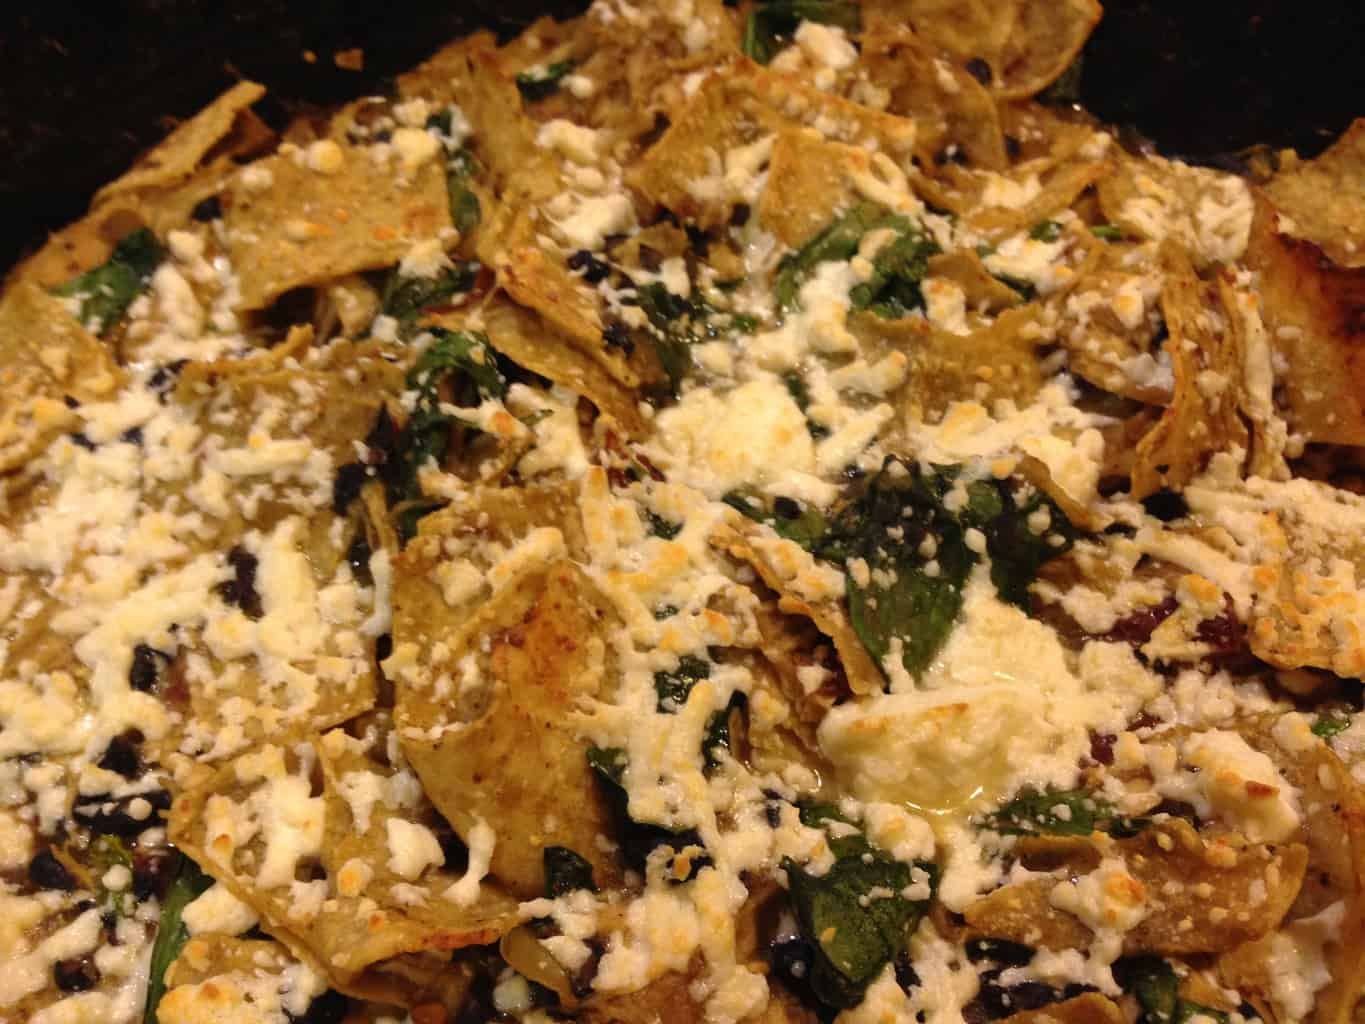 Chilaquiles with cheese, spinach, and chicken.